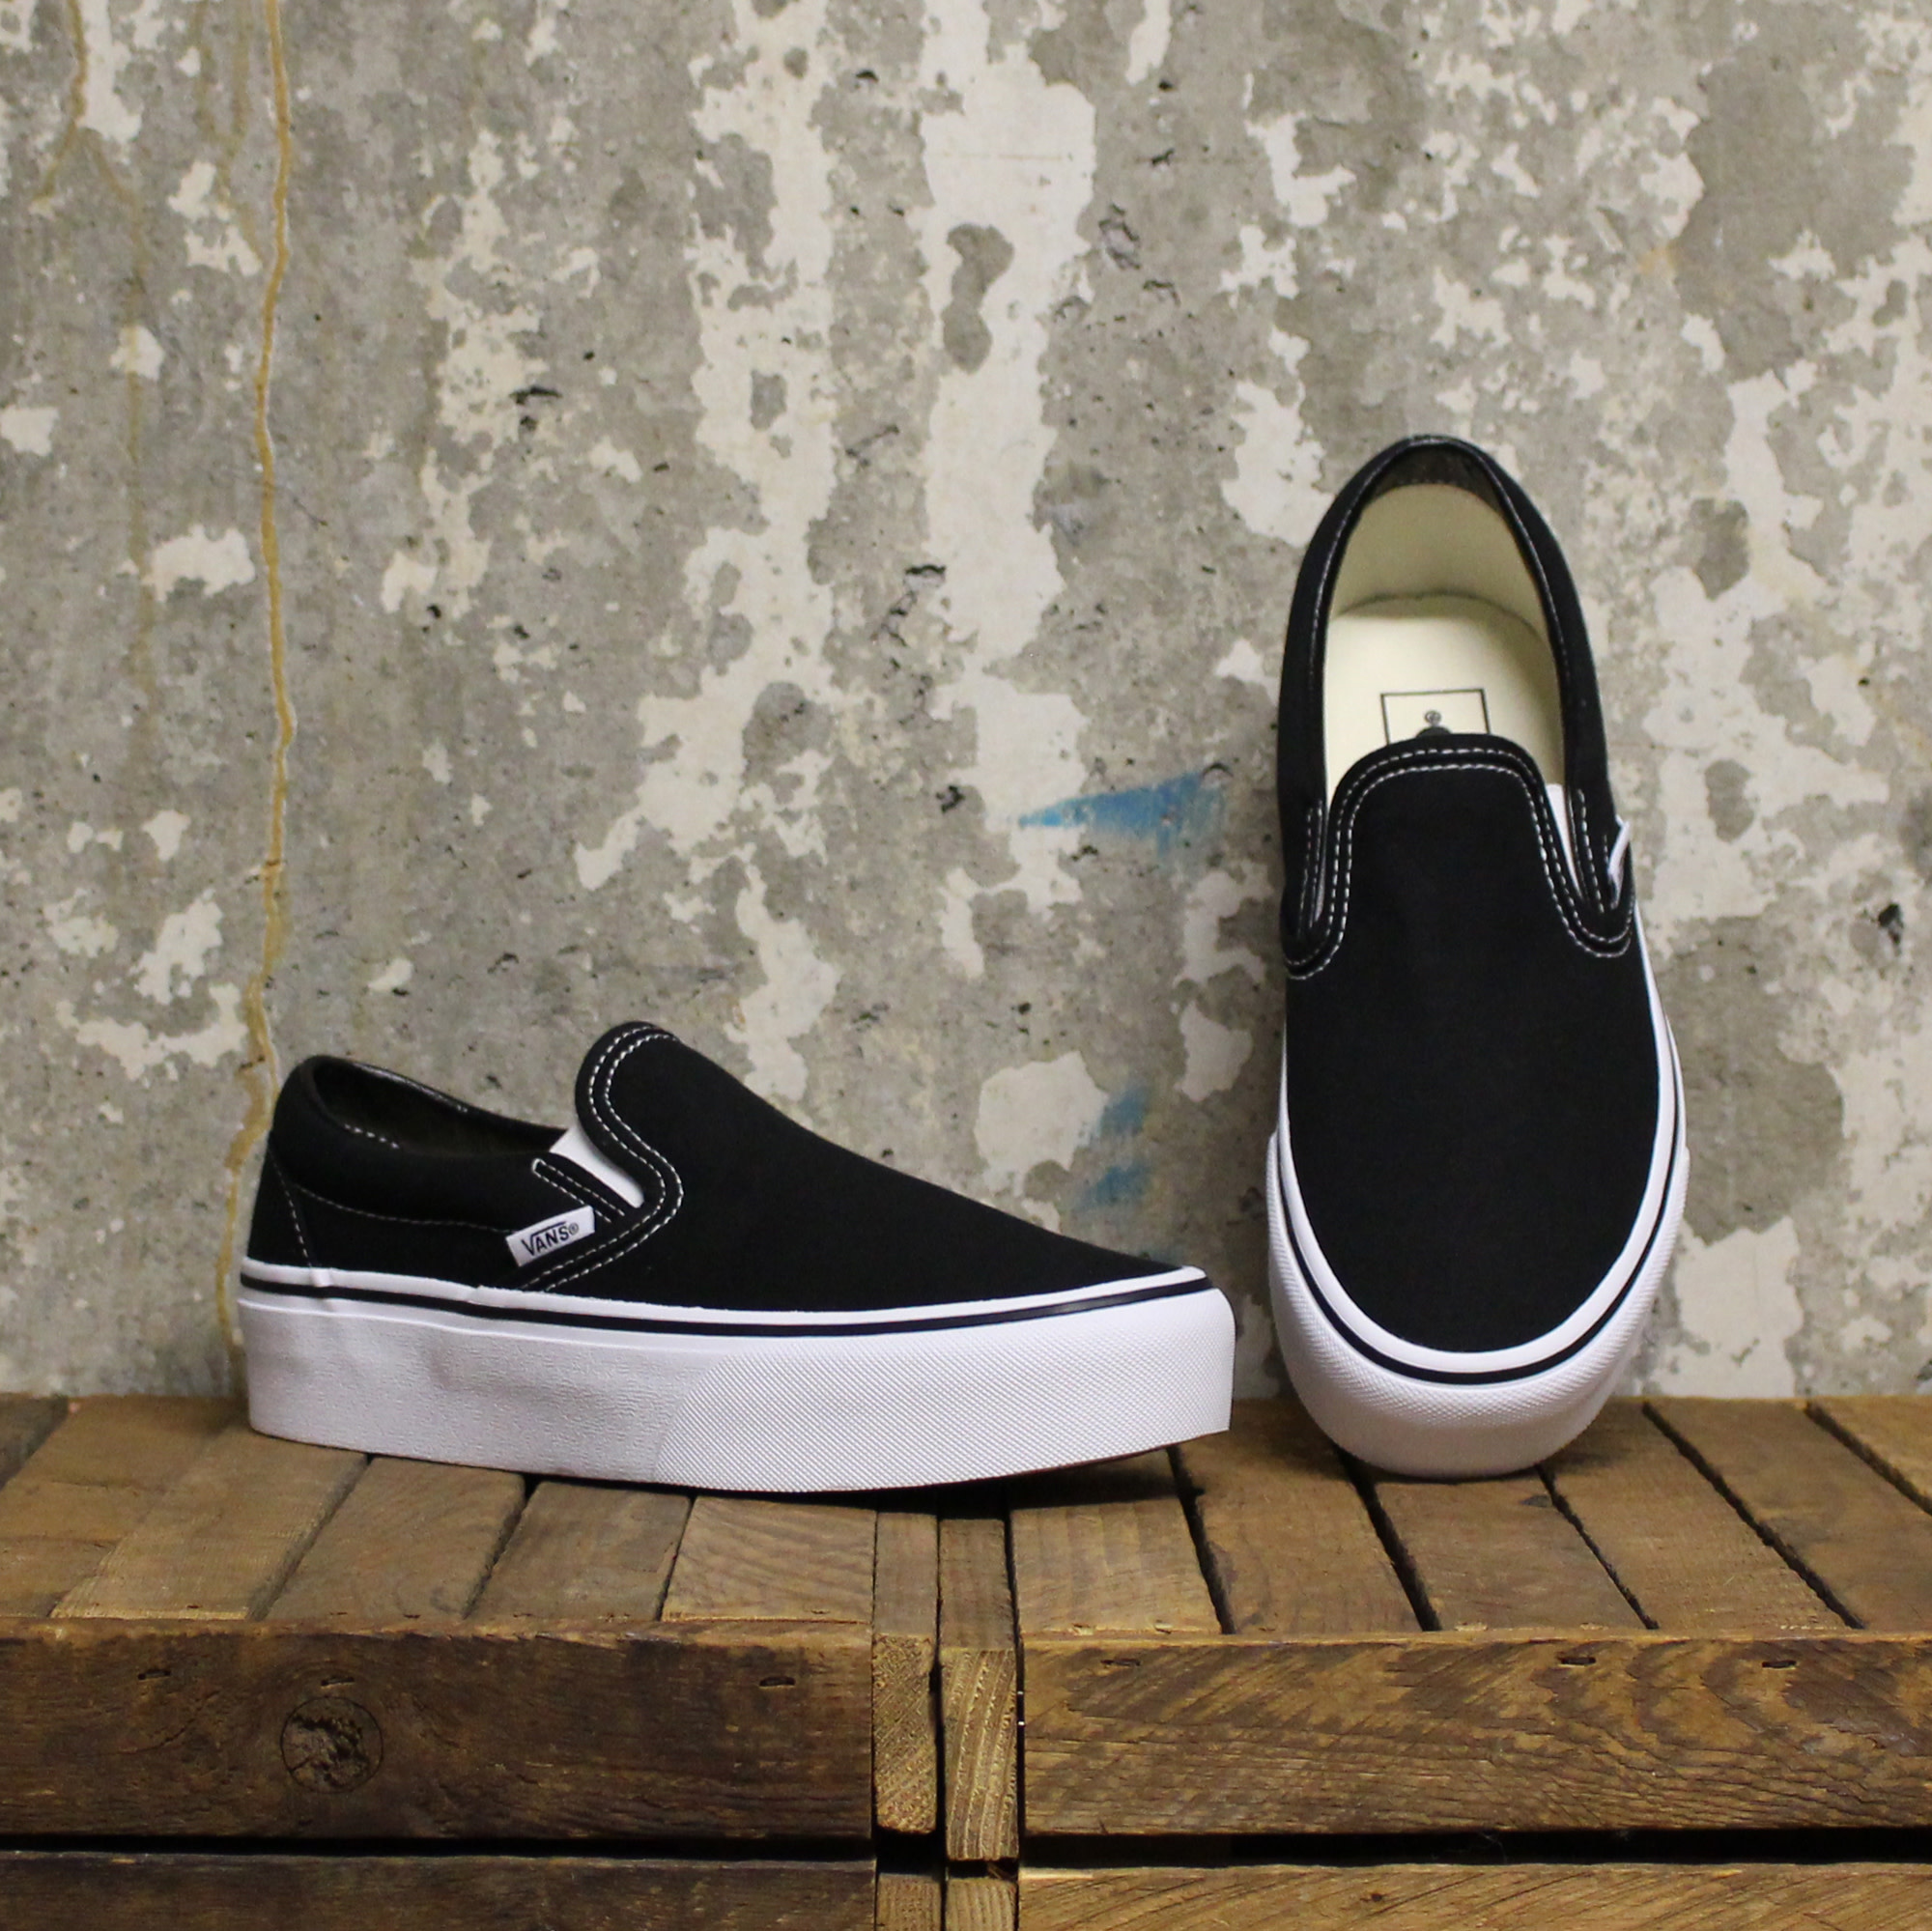 Vans Classic Slip-On Platform - Black